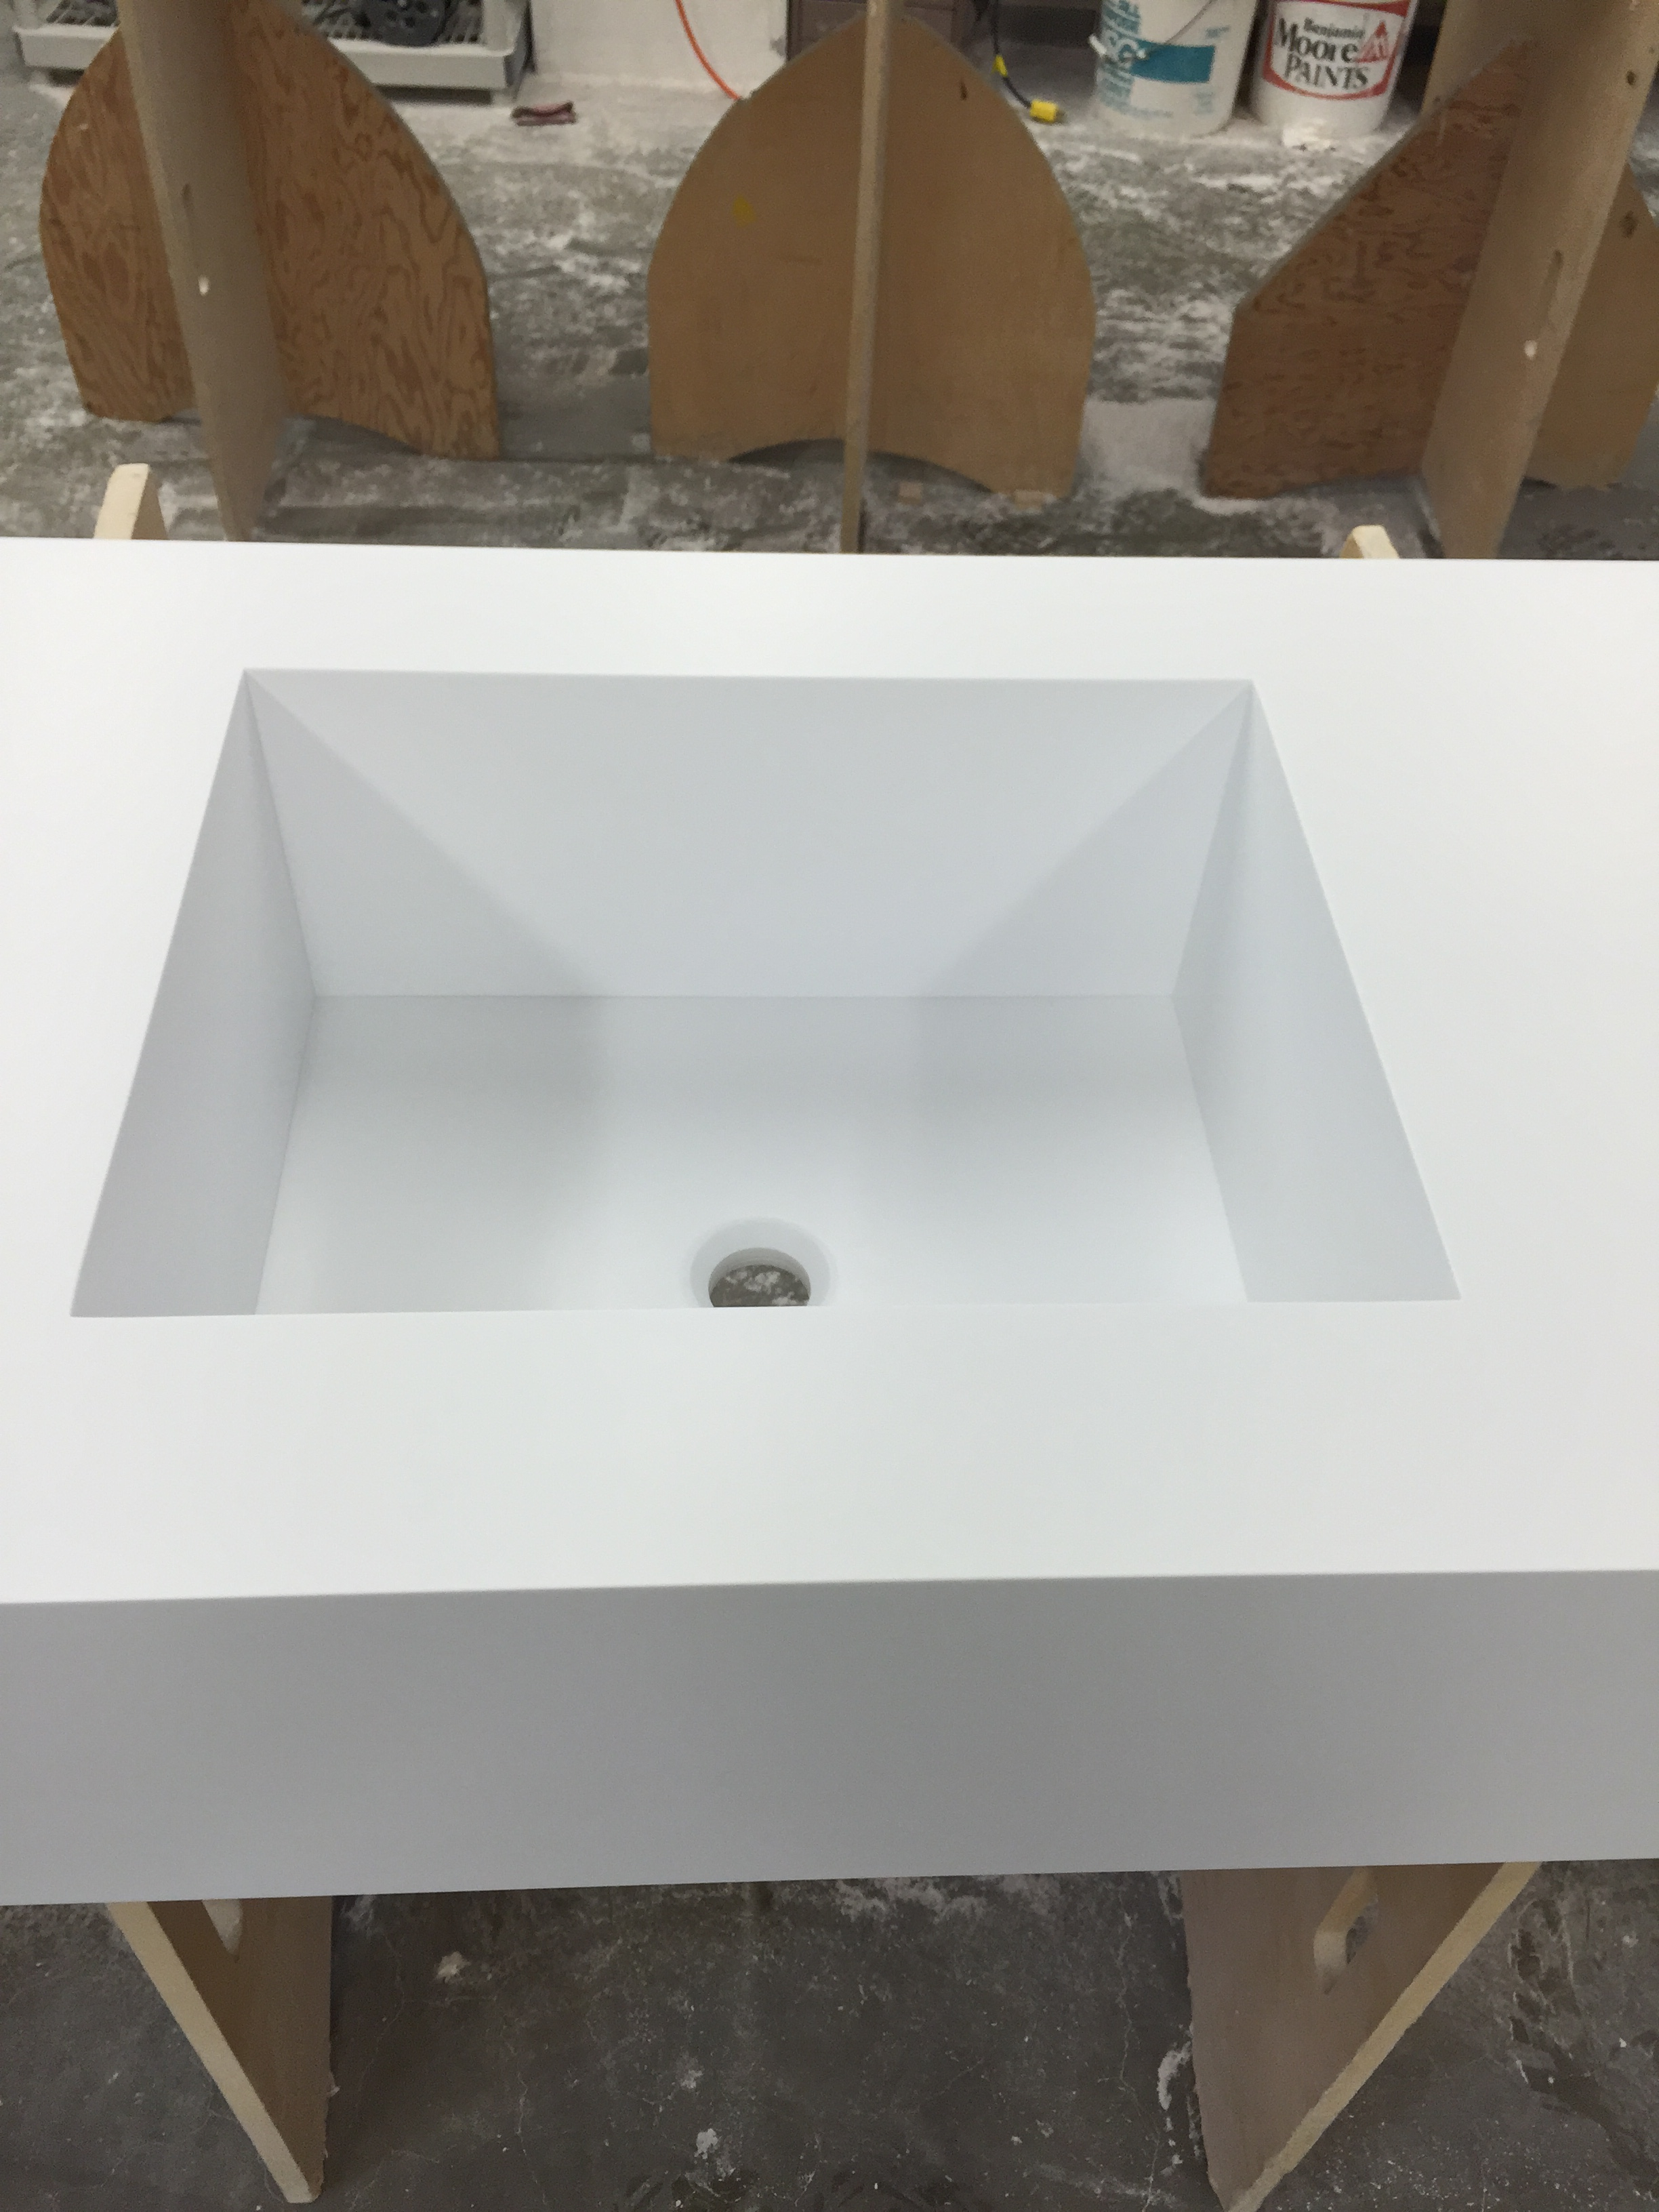 Photos Above Are Of A Custom Corian Sink And Vanity Top In The Color  Designer White By Countertops By Starian.